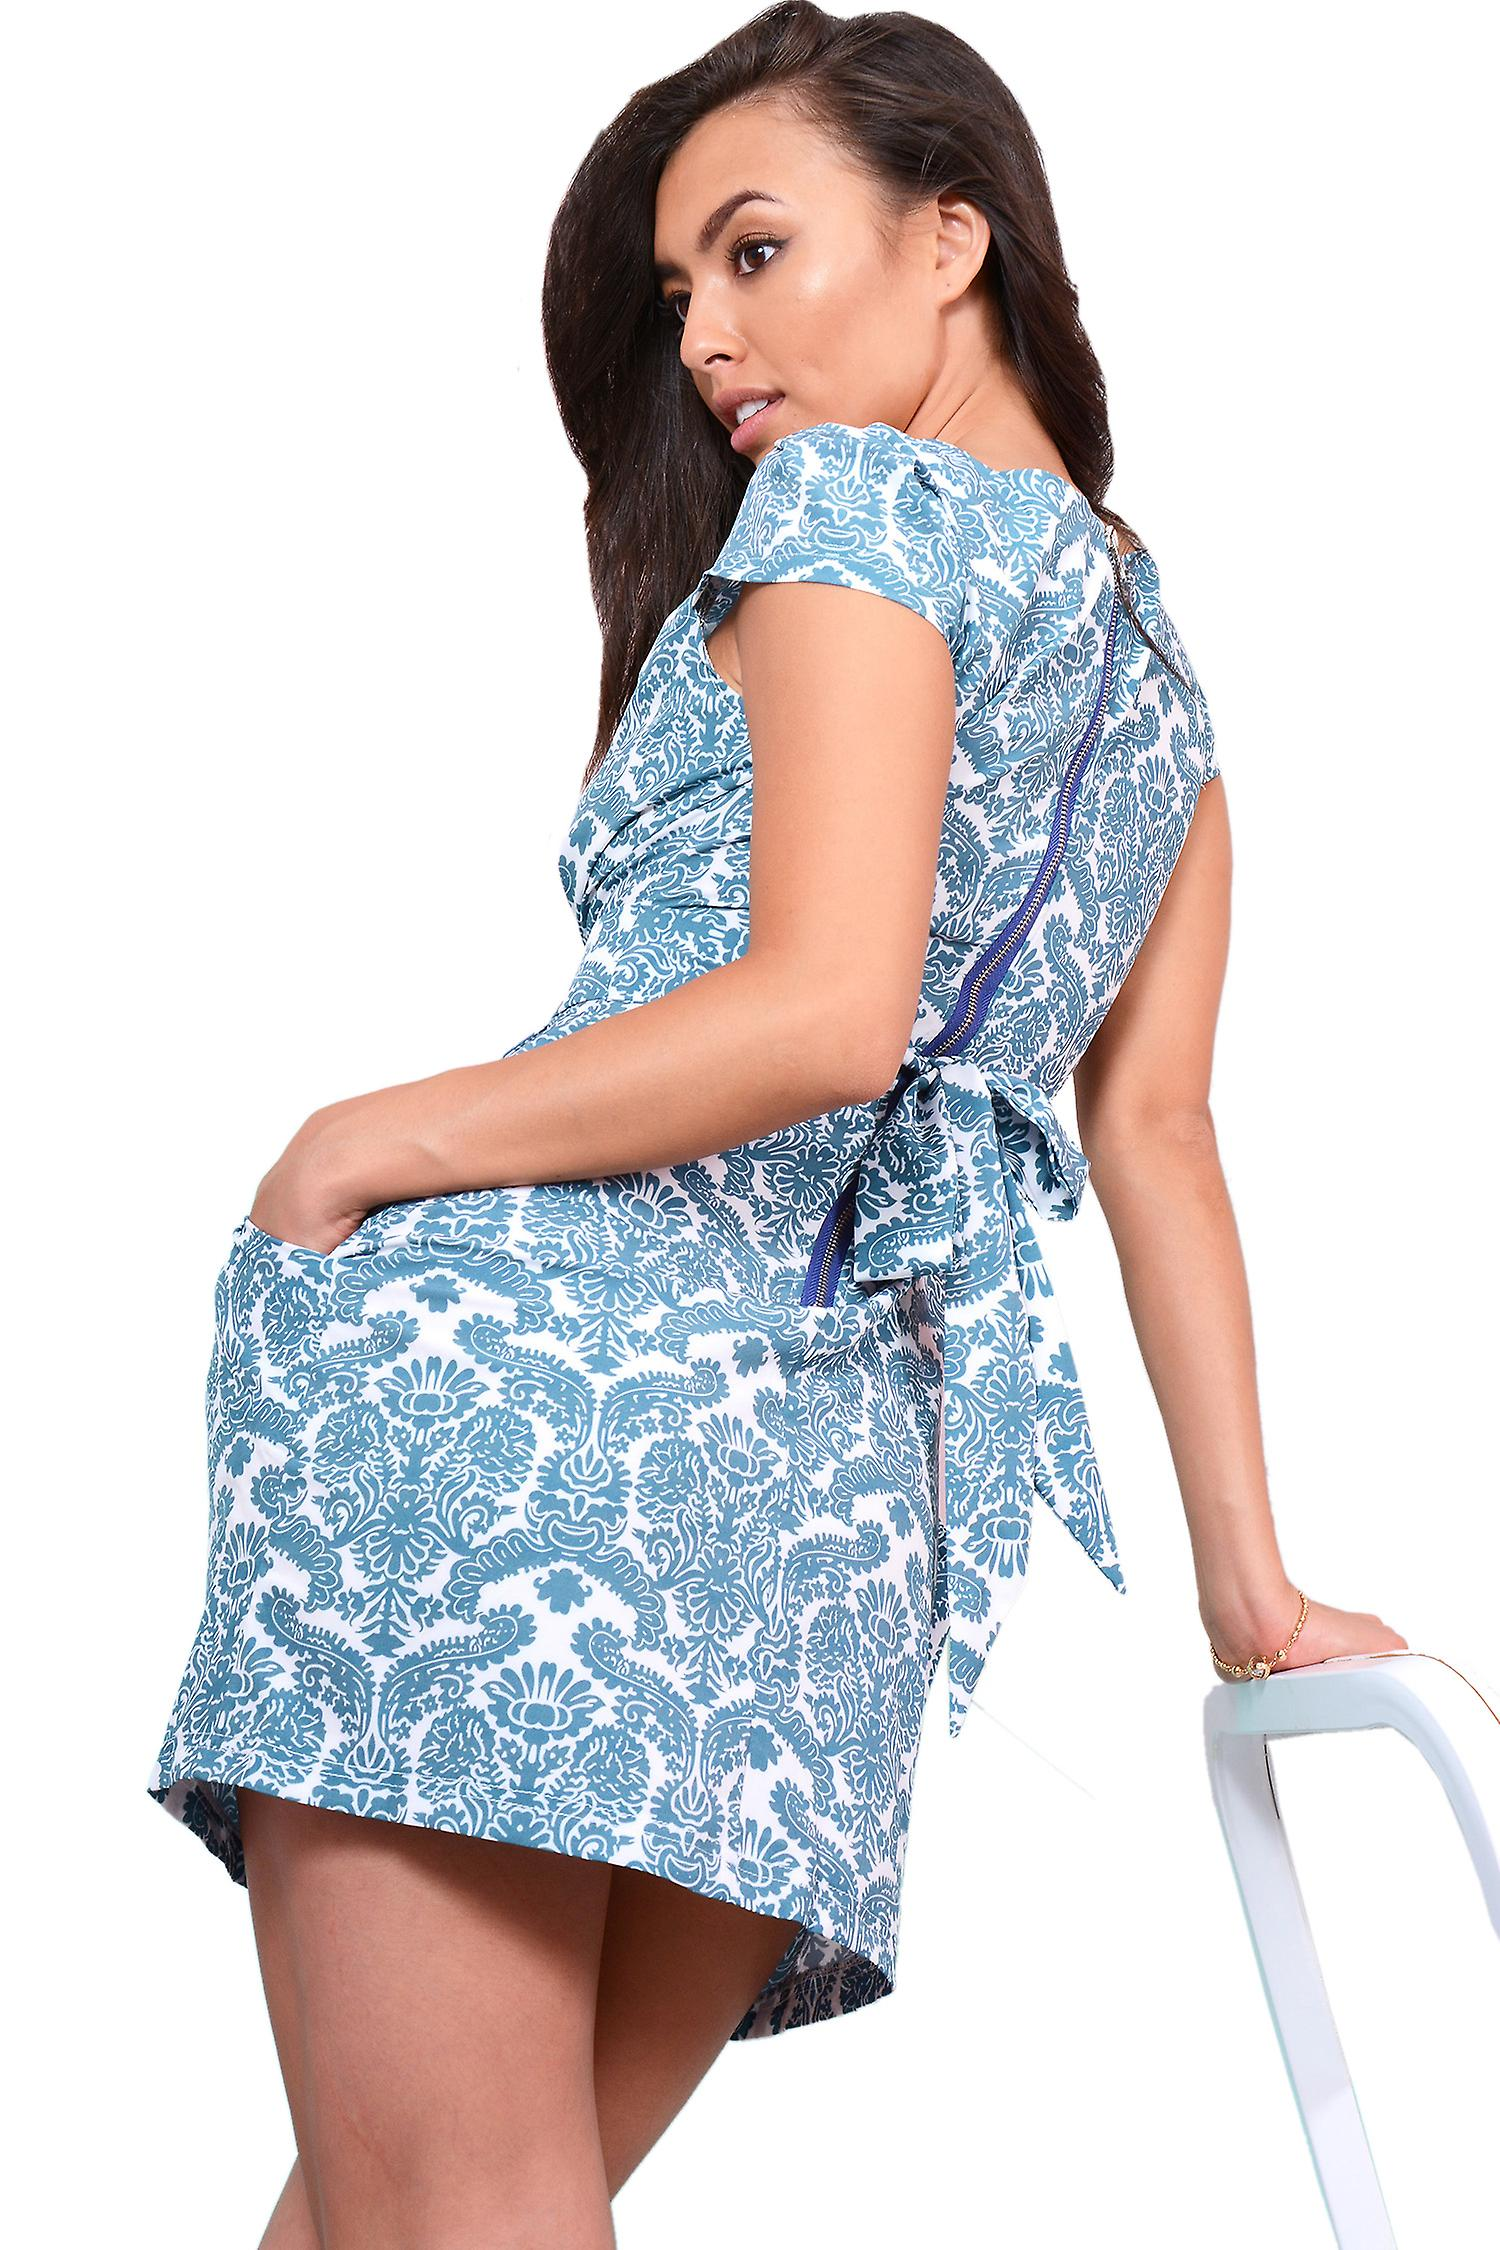 LMS White Structured Dress With Turquoise Blue Paisley Print